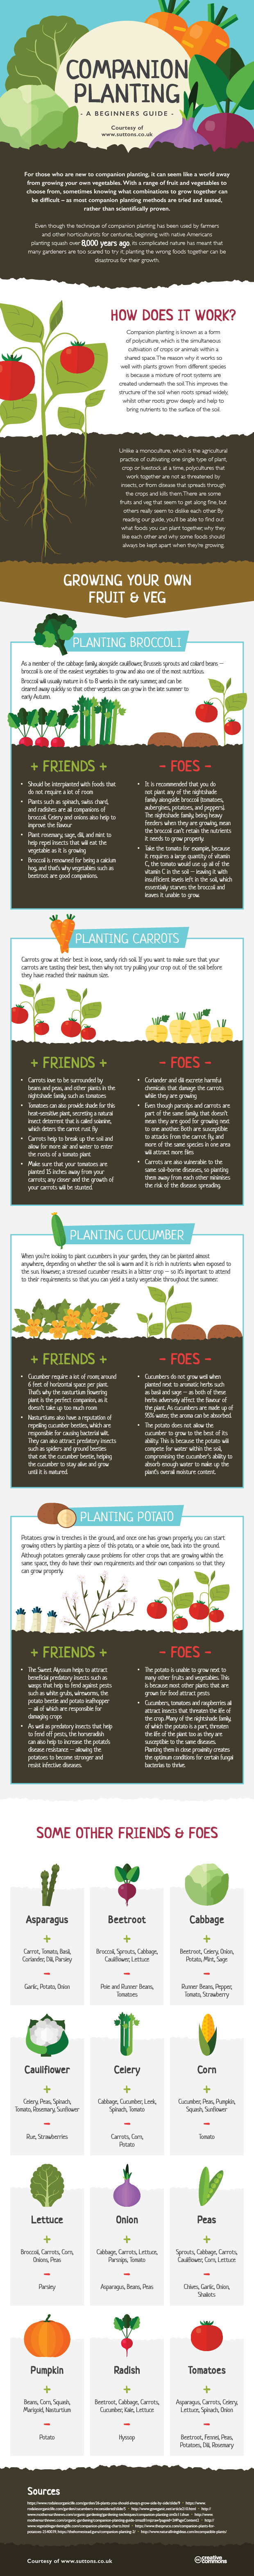 The Beginners Guide to Companion Planting